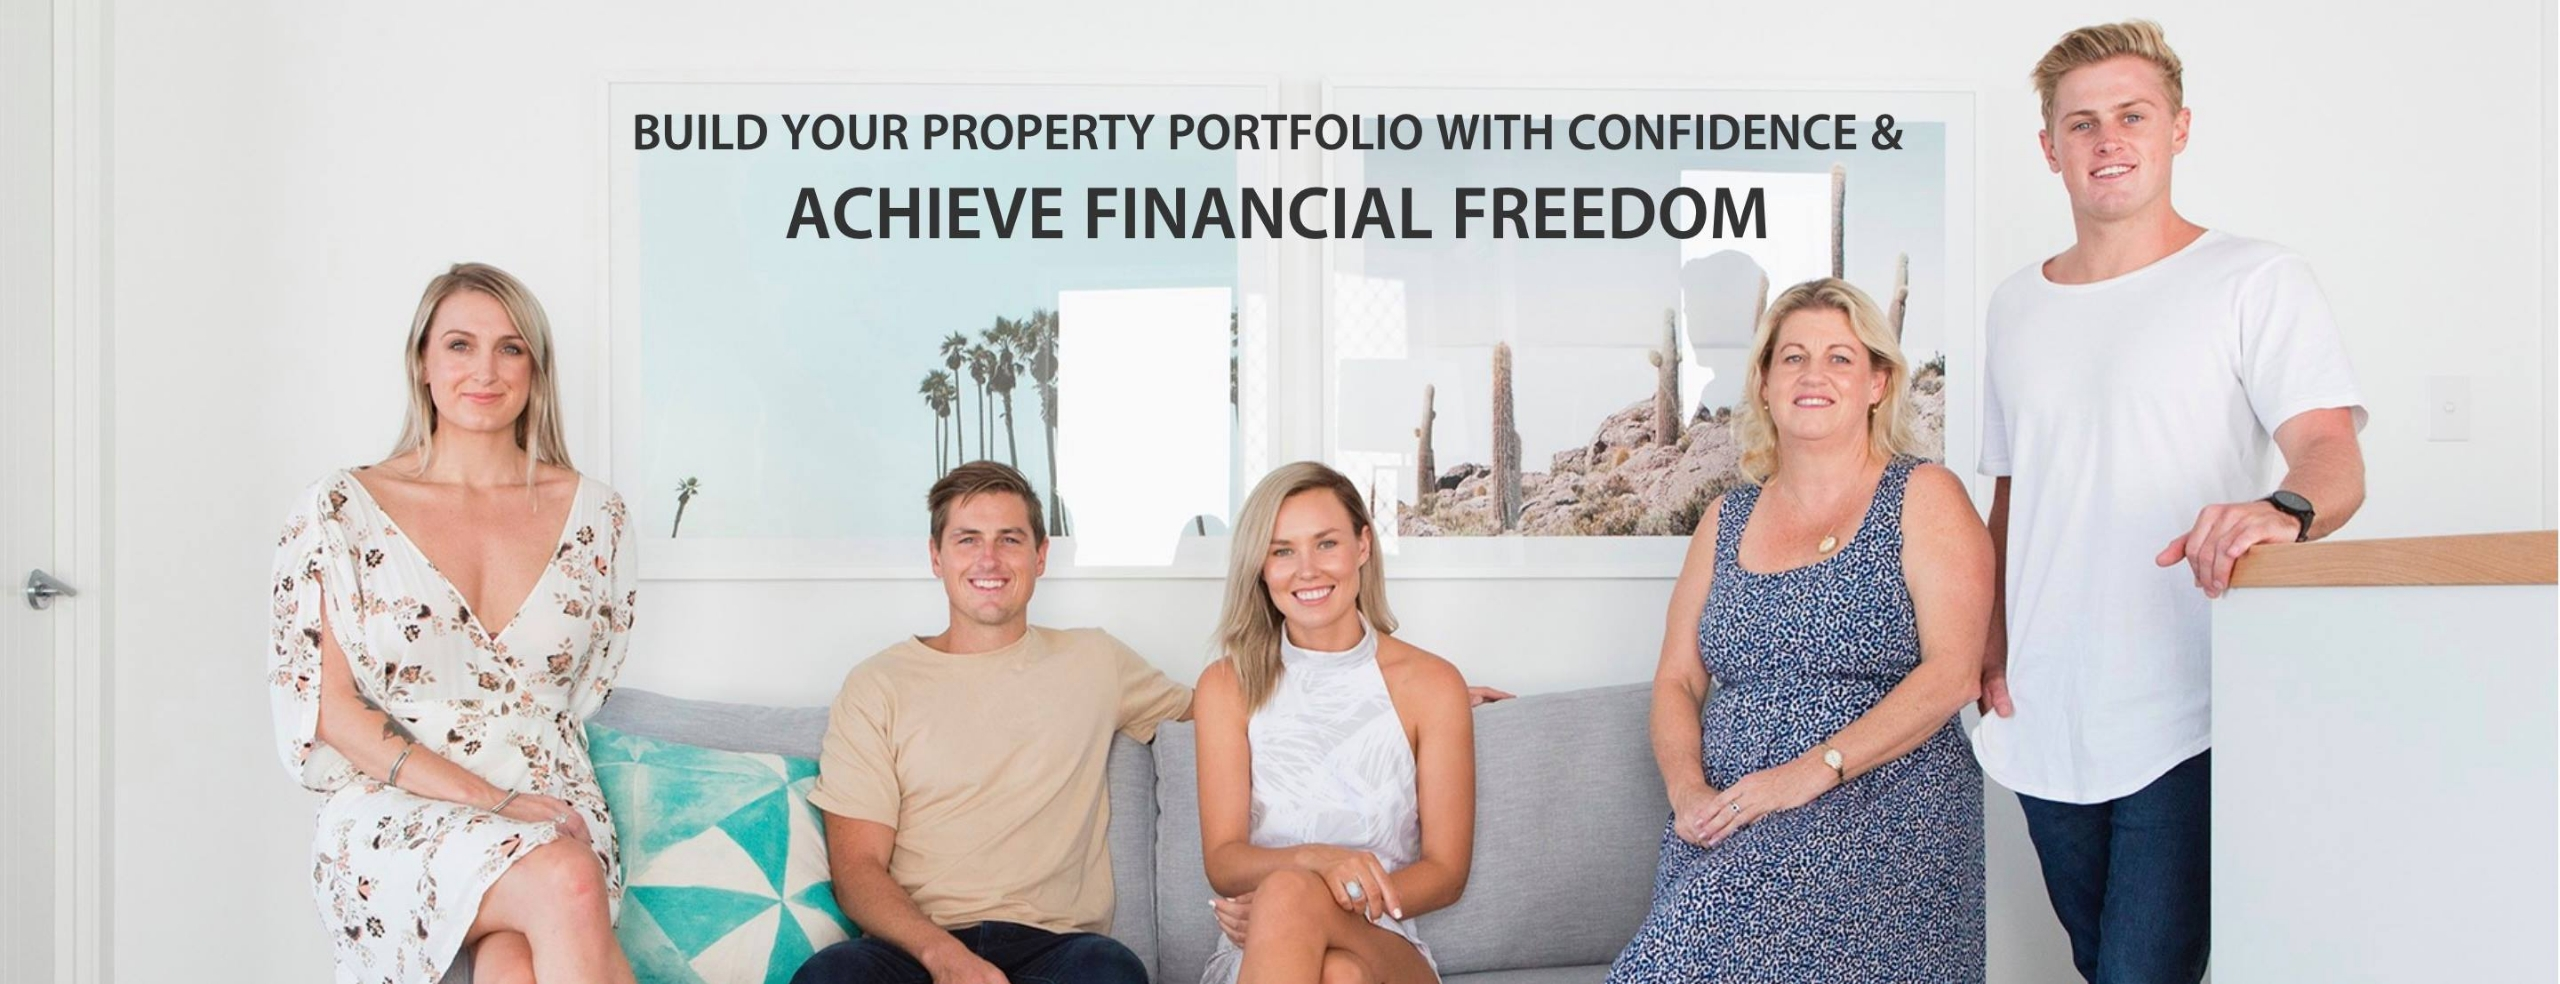 Pumped On Property (@pumpedonproperty) Cover Image